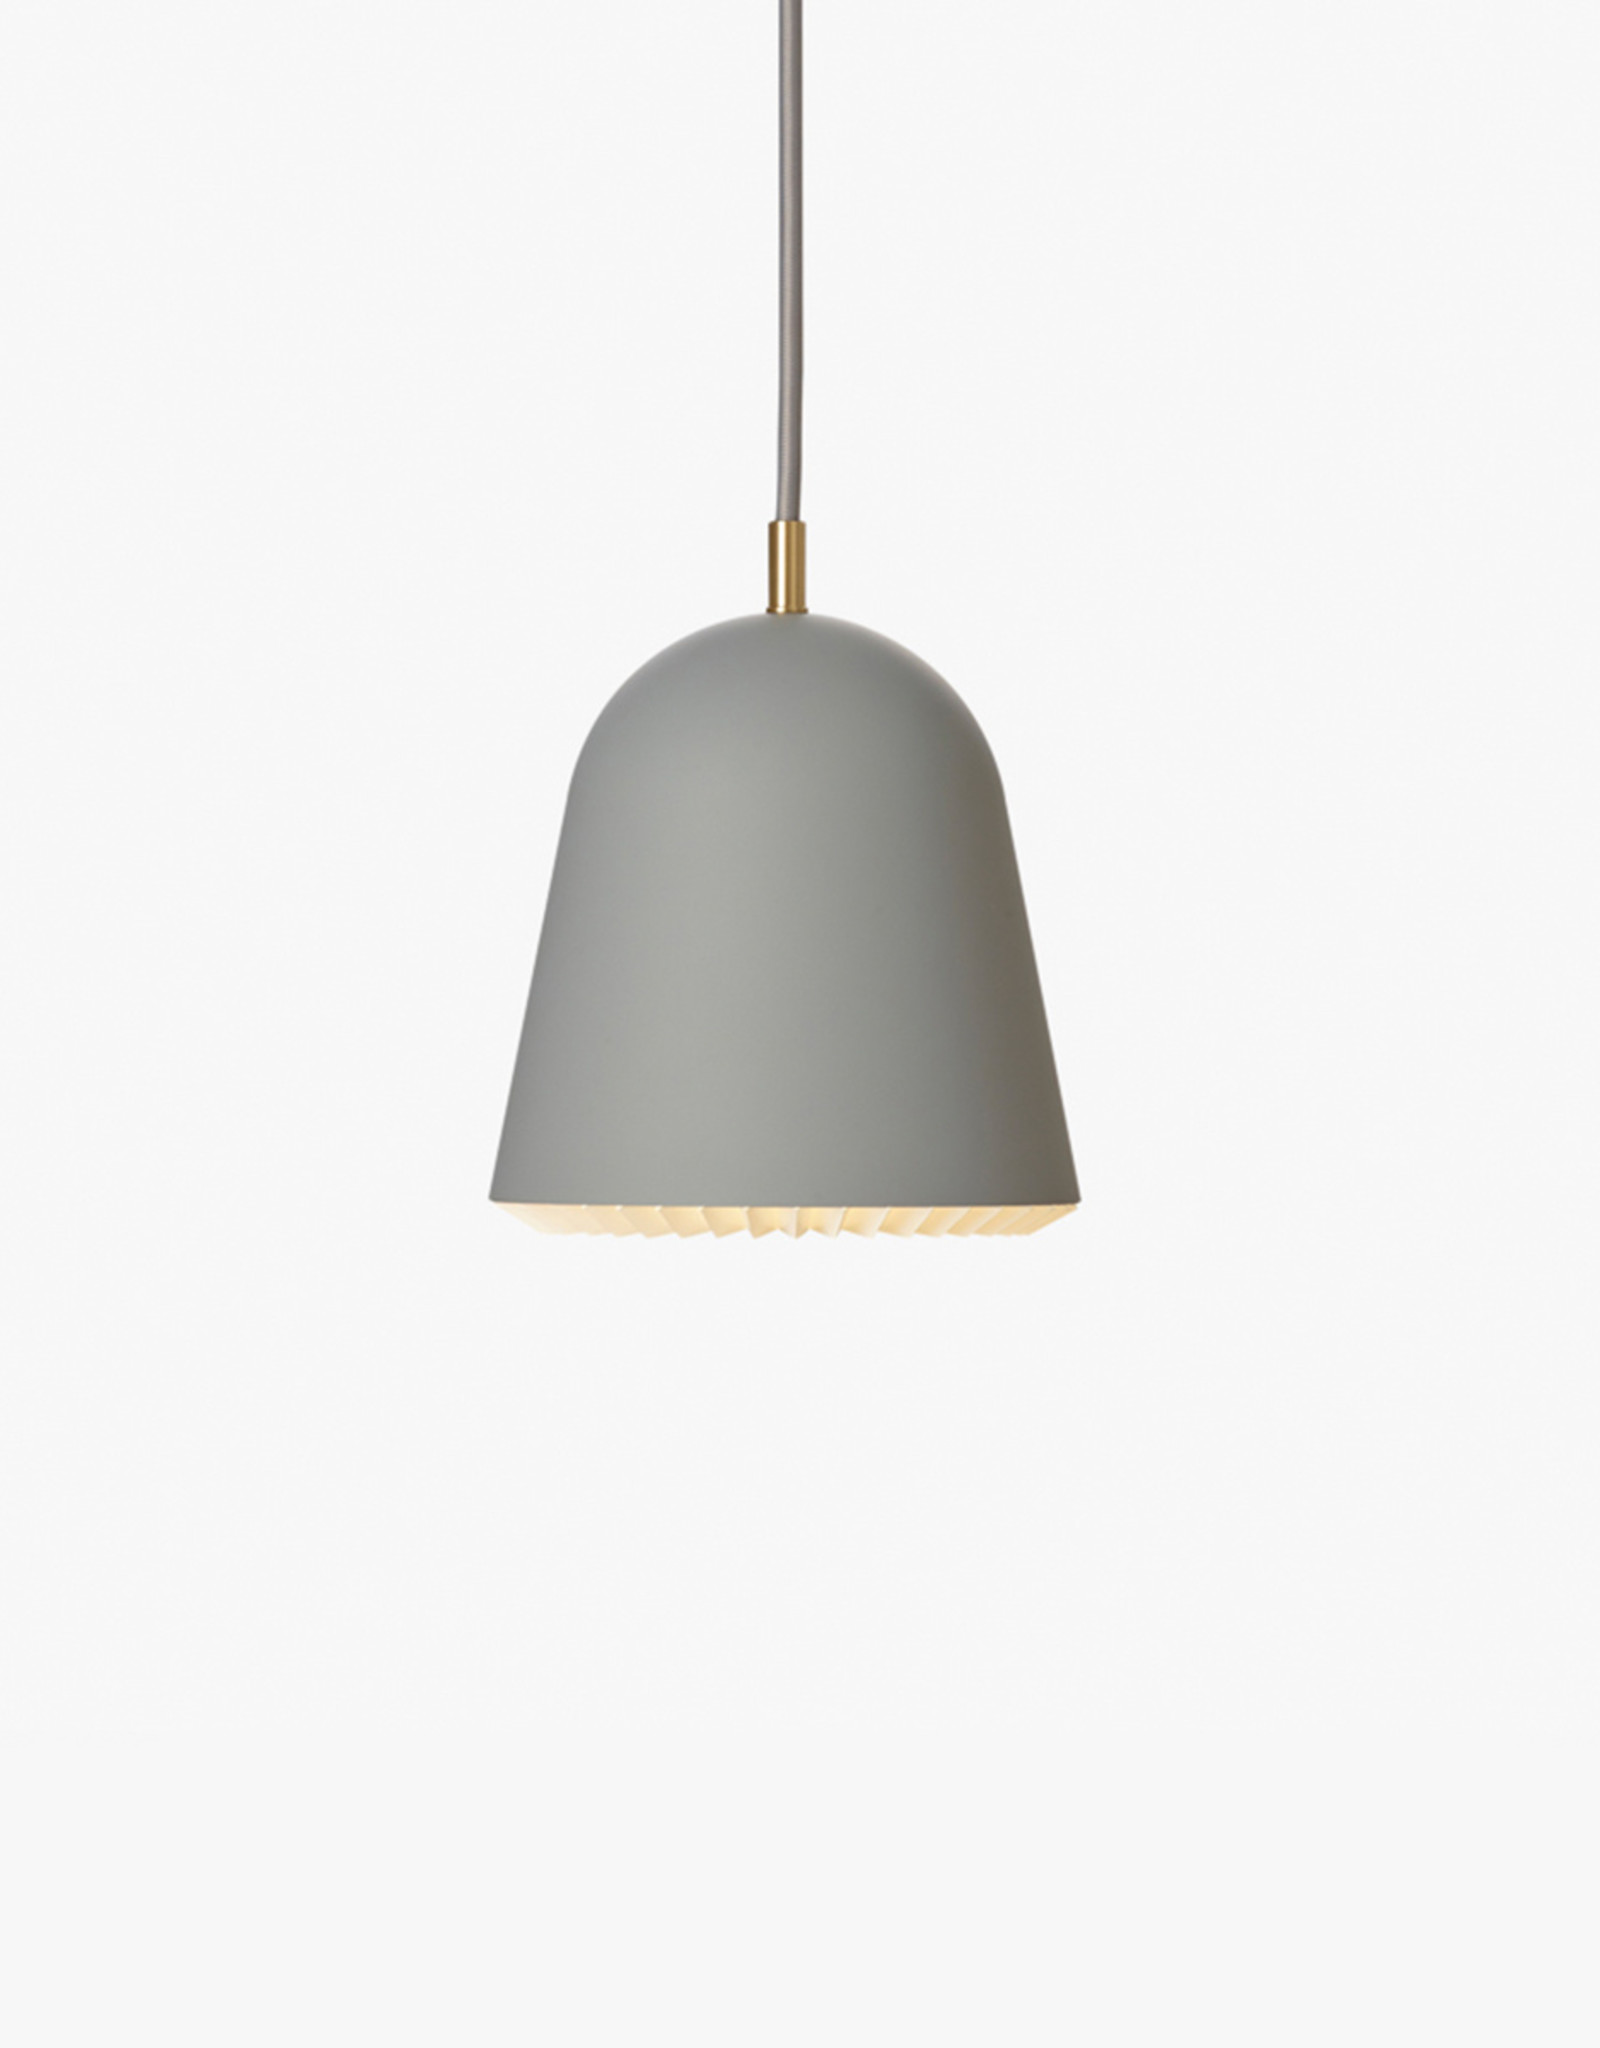 Caché pendant light by Aurelién Barbry | Grey | XS | W16cm x H15cm | 1x E14 420 LM max. 10W LED bulb required